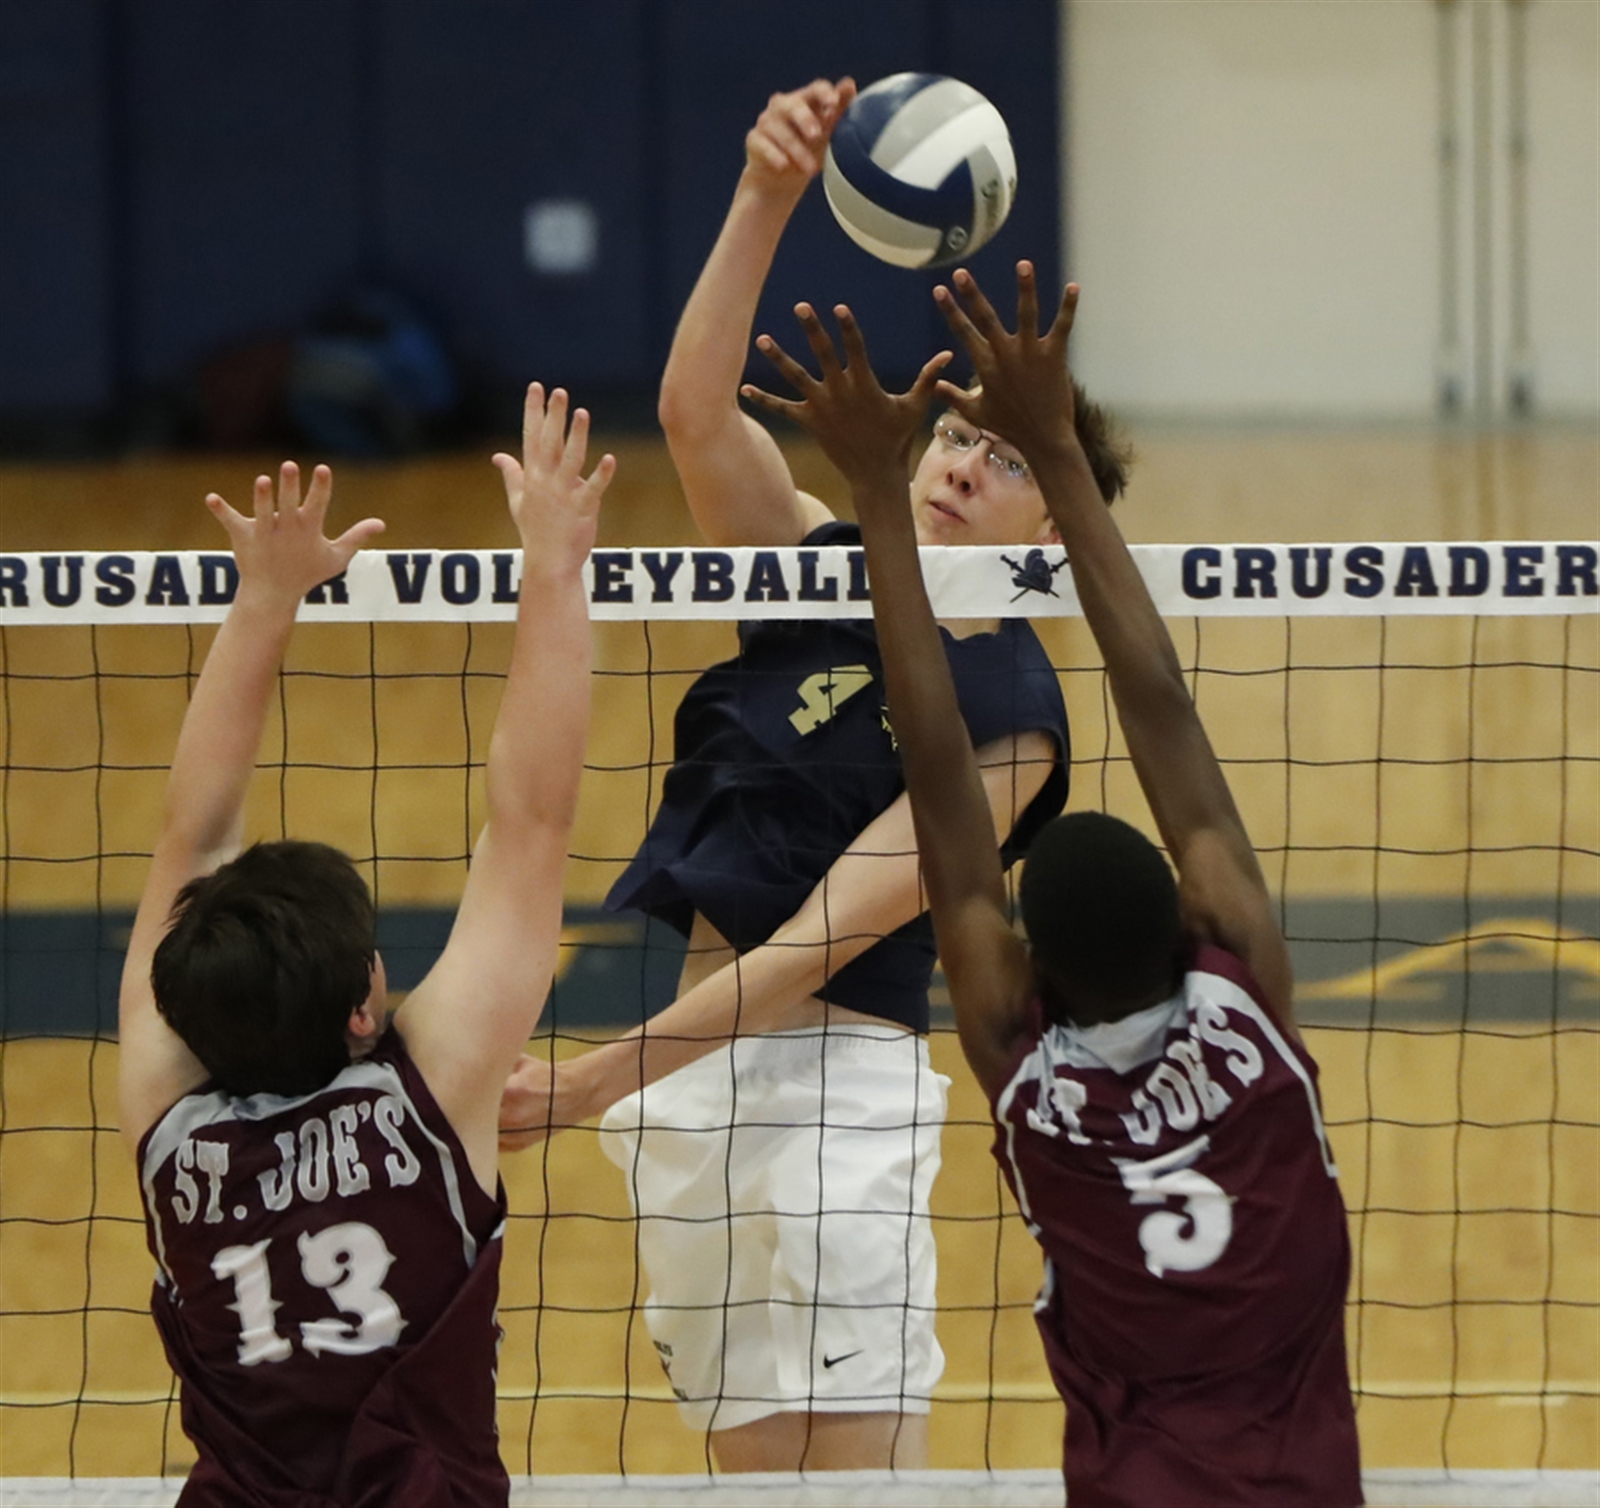 Canisius' Matt Donnelly returns a ball against  St. Joe's during the second game at Canisius High School on Thursday, Sept. 22, 2016.  (Harry Scull Jr./Buffalo News)